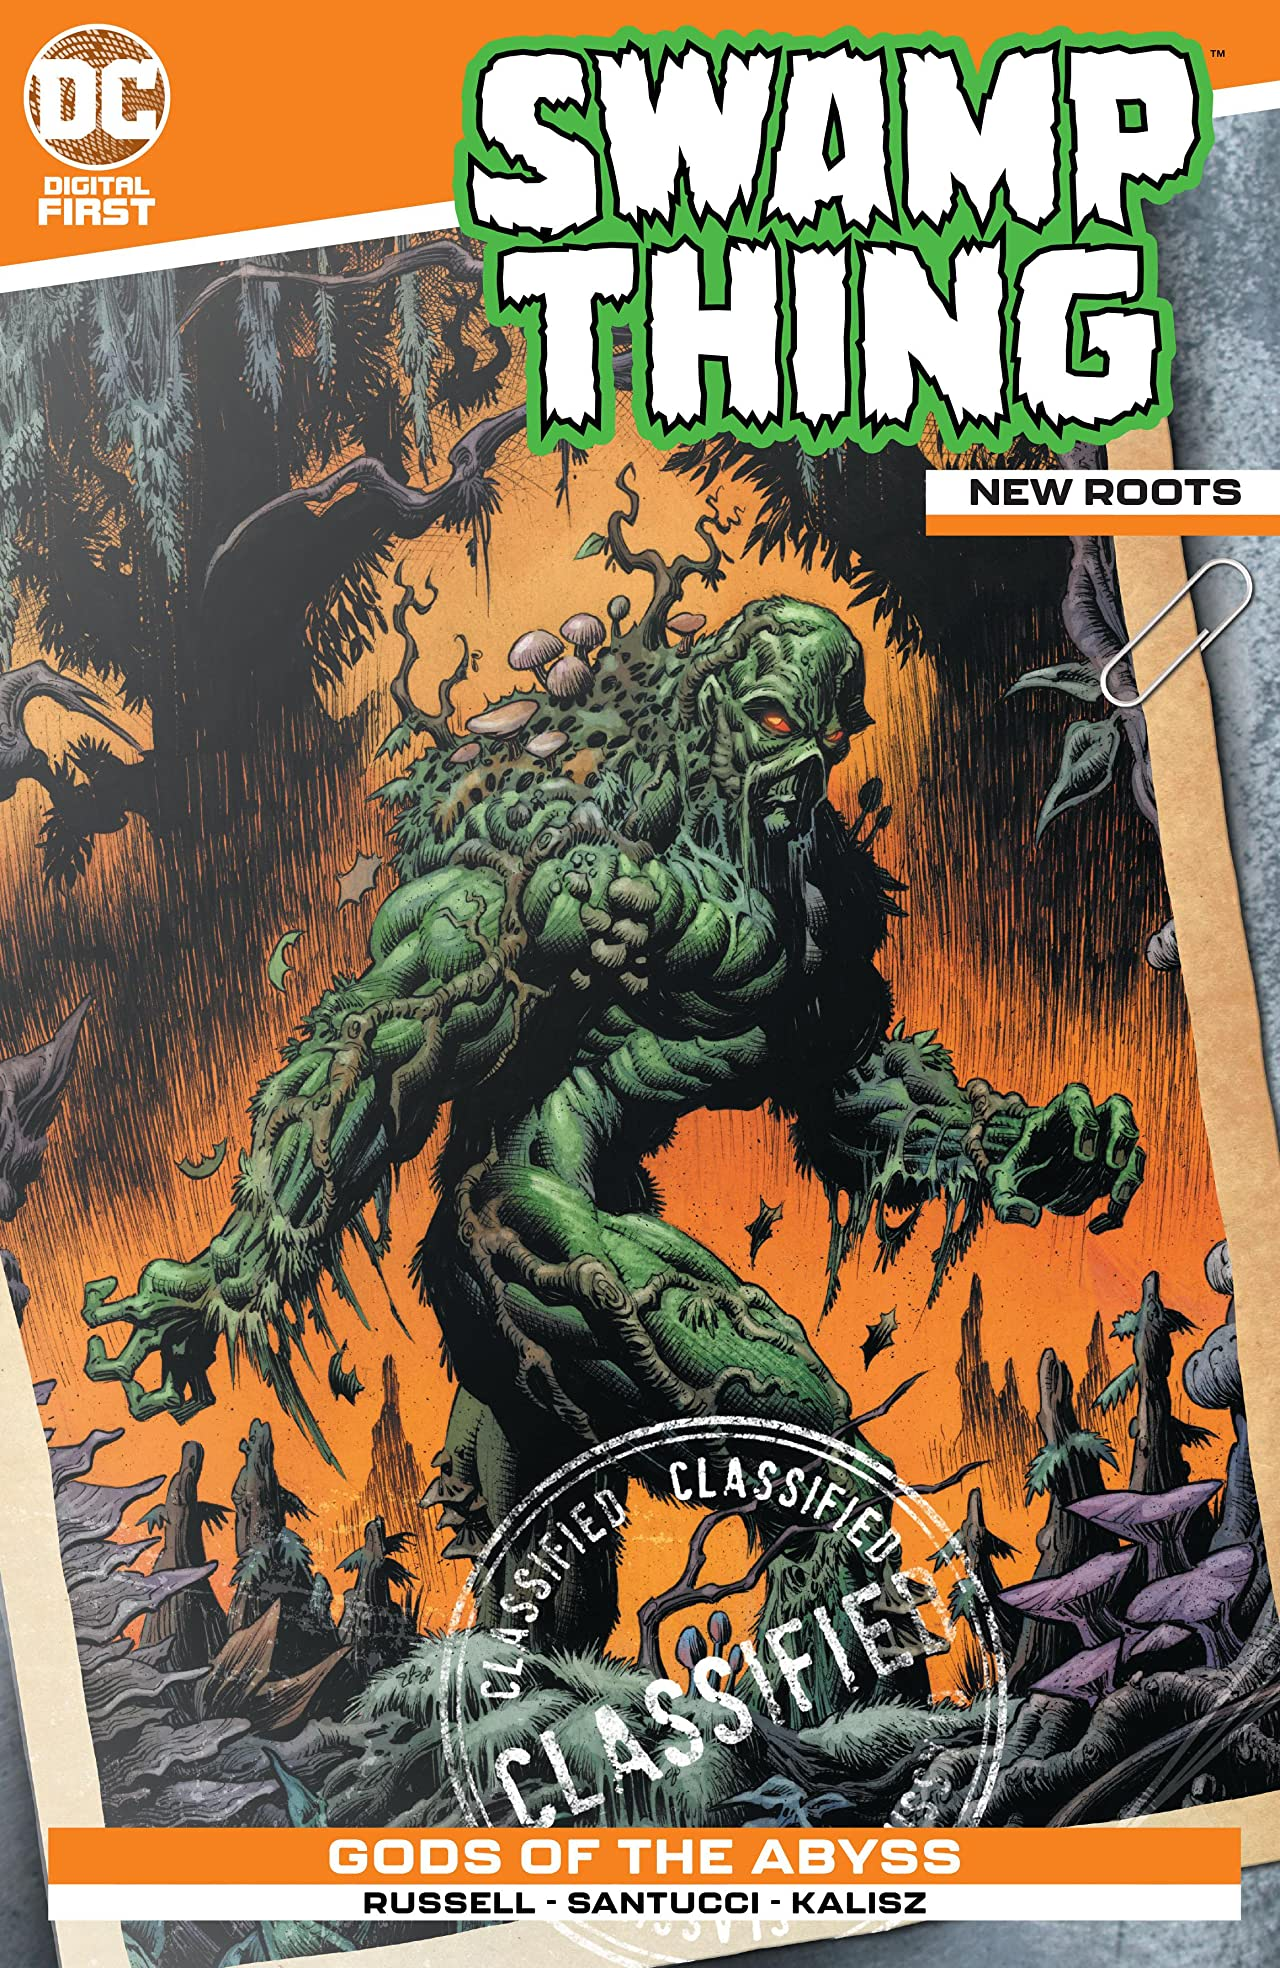 Swamp Thing: New Roots No.3